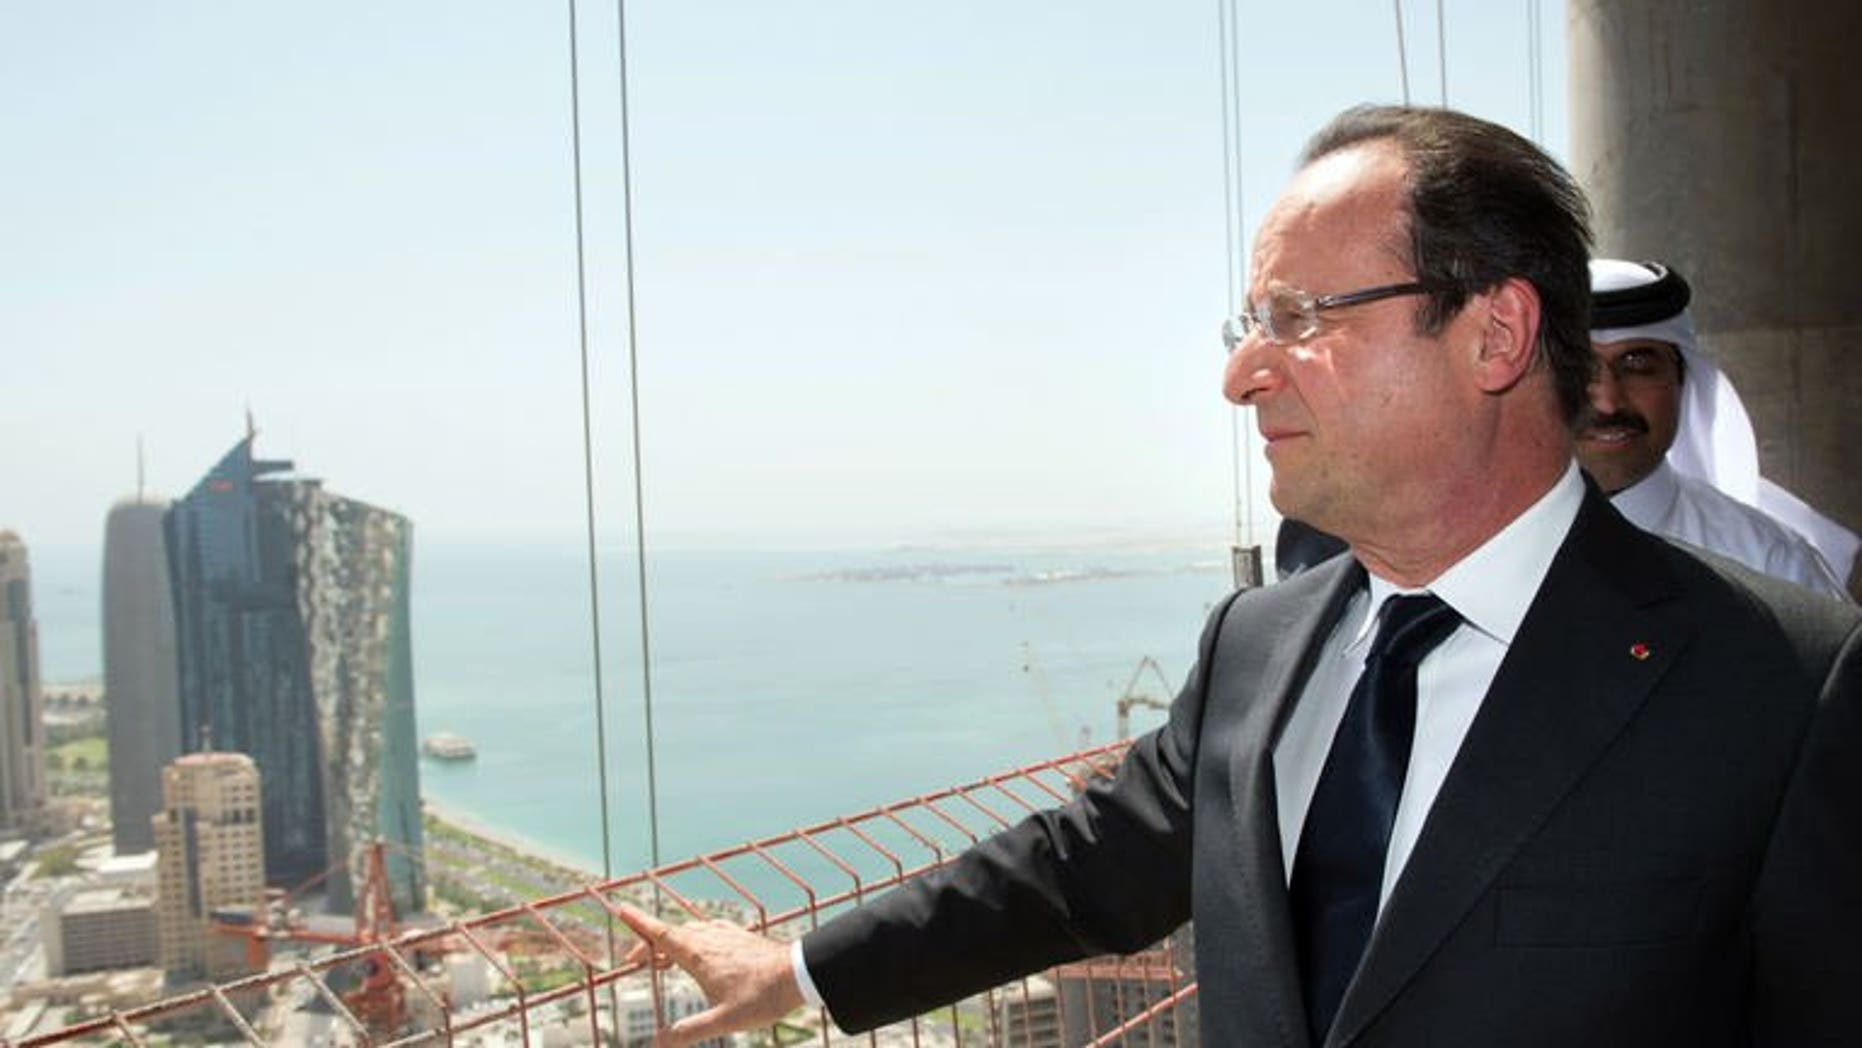 """French President Francois Hollande visits a Bouygues construction site in the Qatari capital Doha, on June 23, 2013. Hollande is on a two-day official visit to Qatar for talks on the Syrian civil war and on economic ties with the gas-rich Gulf state. Hollande says he has """"every reason to believe that eight Europeann hostages are alive"""", and that Paris was """"always seeking contacts"""" to free them."""